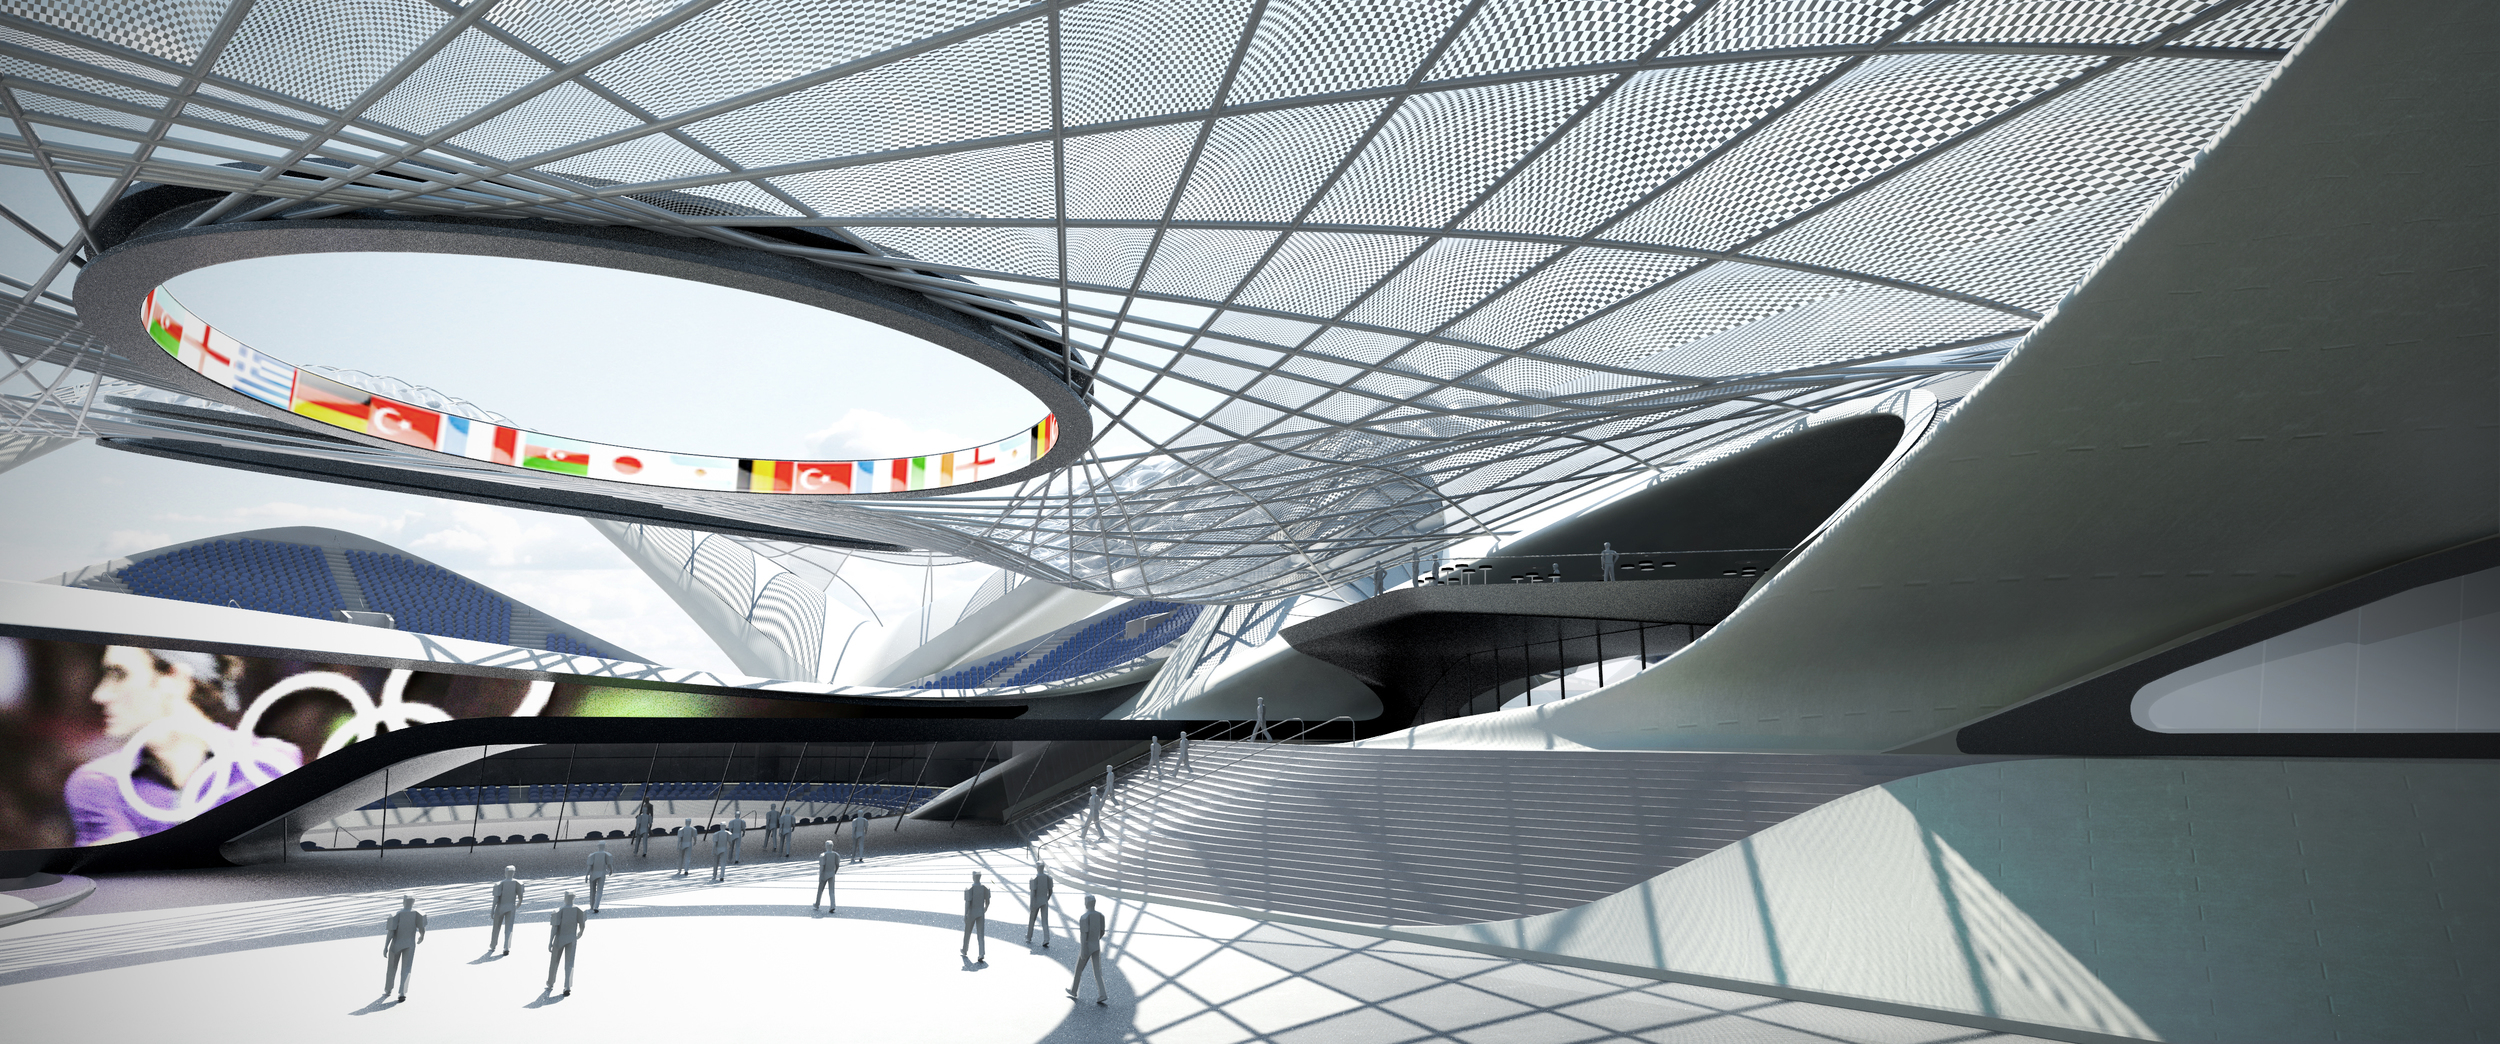 A roof panelling system is utilised to blur the transition between the shells and tensile members, while providing shelter for the programmed seating below. The vaulted shape of the transparent  ETFE panels provide structural rigidity while adding a visceral and material quality to the transition between the compression and tensile parts of the system. Together the tensile members in concert the compression shells read as a single parametrized surface that correspond to the programmatic and structural requirements of the building on site.